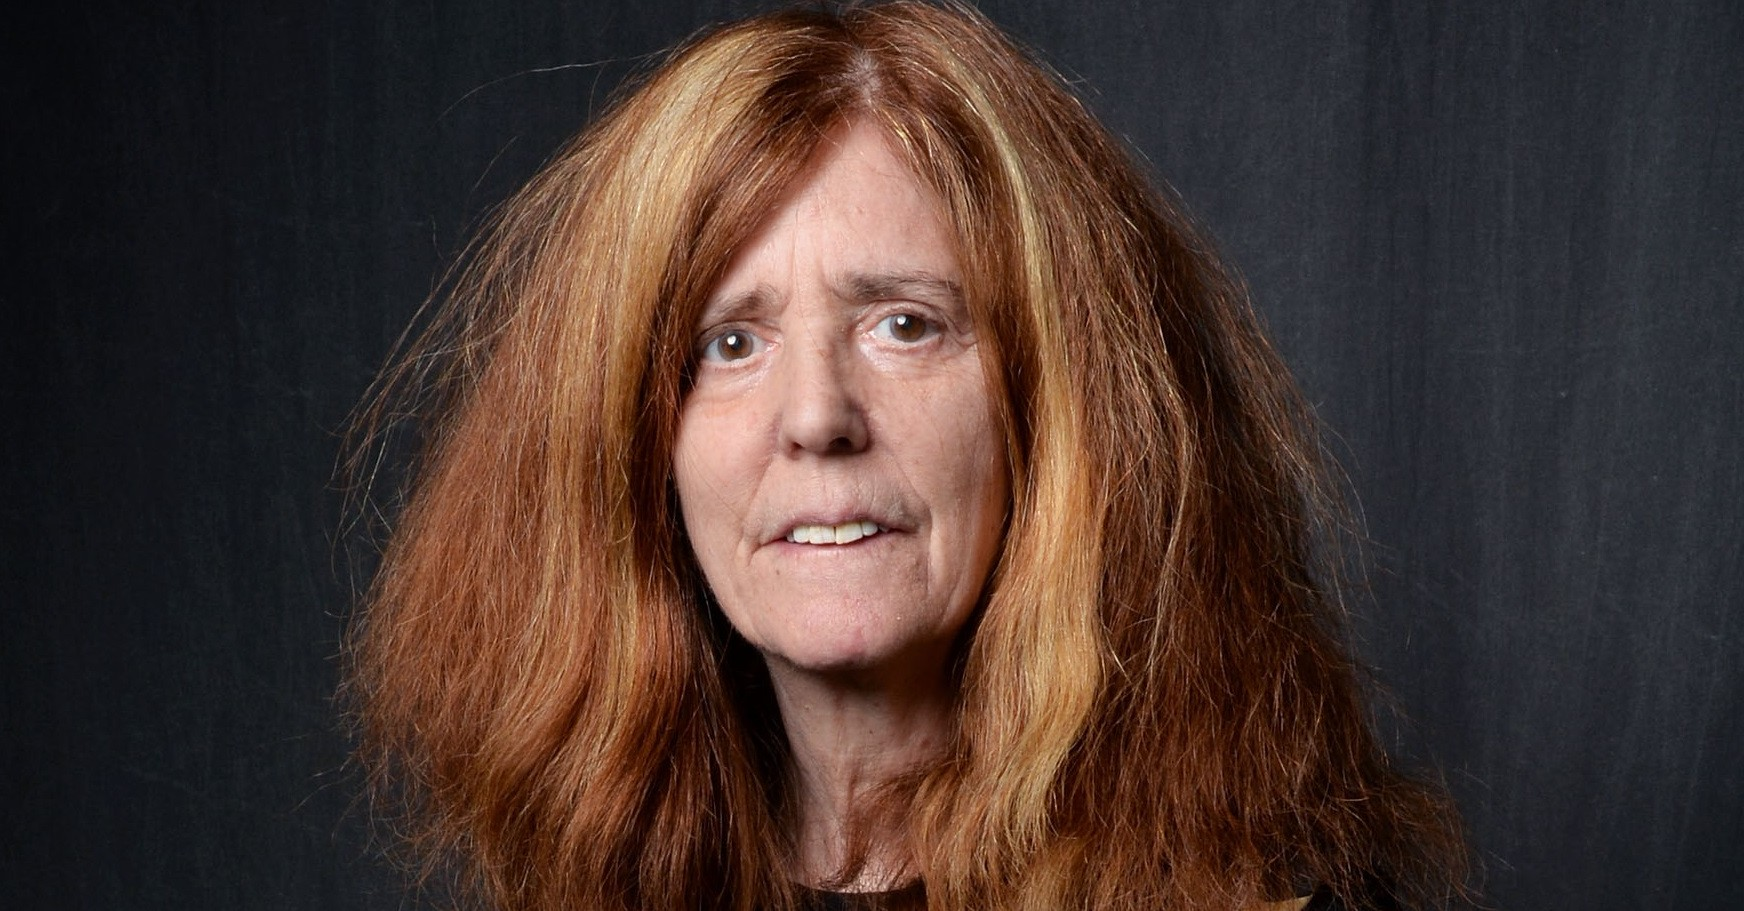 Buffalo native Elizabeth Swados has died at 64. (Getty Images)